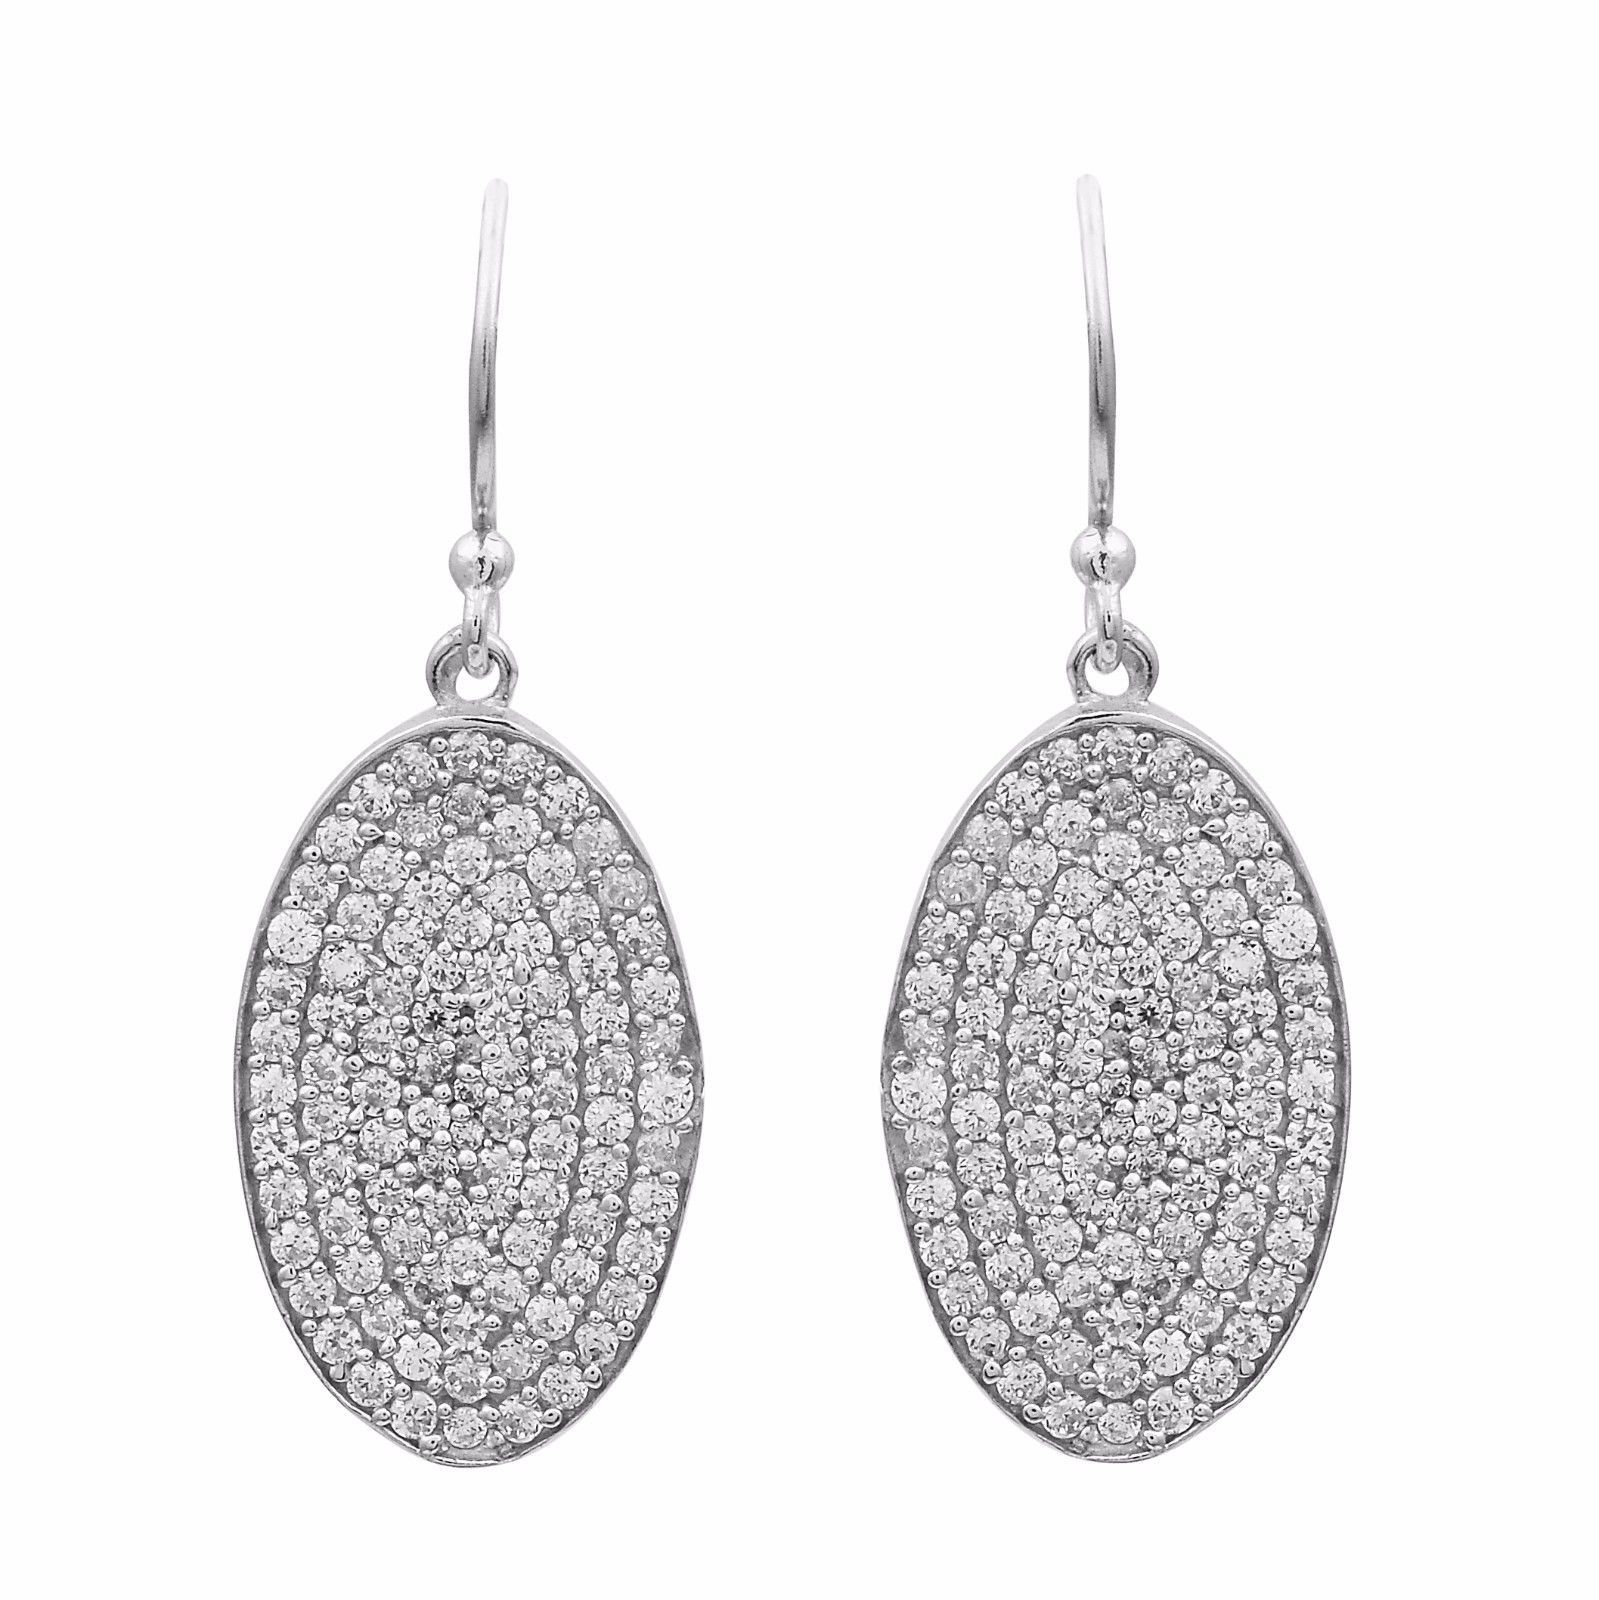 Exclusive Cubic Zirconia 925 Sterling Silver Earring Shine Jewelry SHER0801